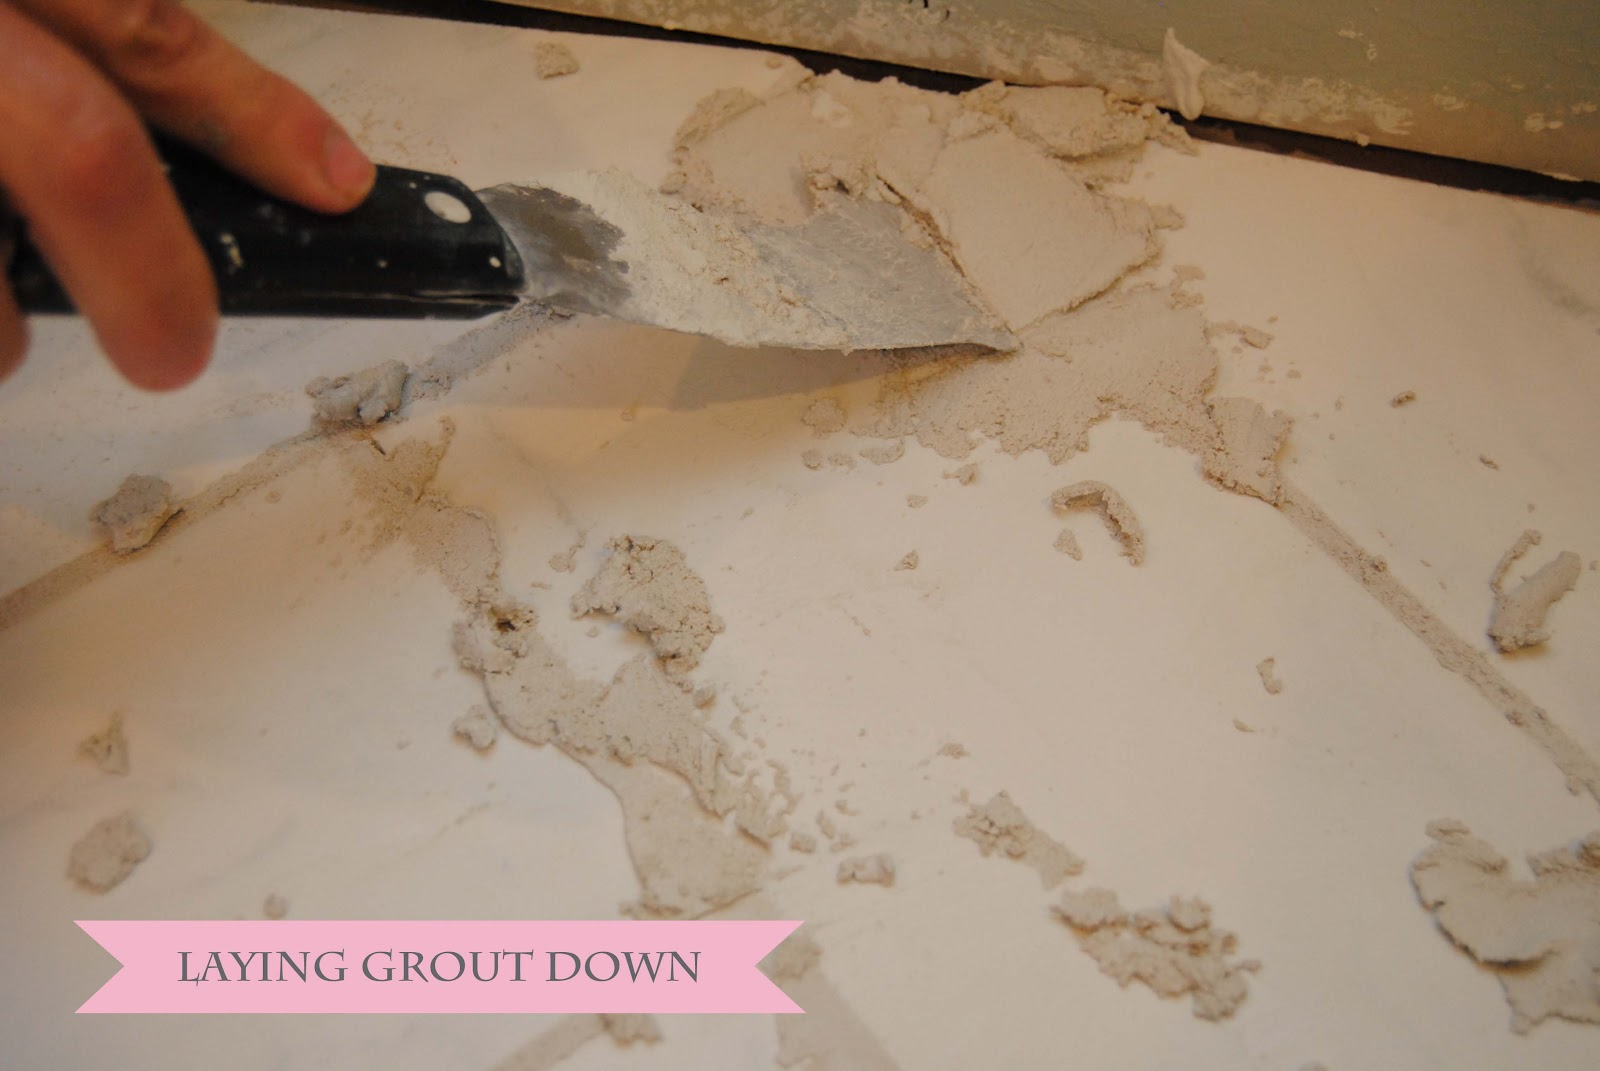 Visual eye candy how to tile a herringbone floor part i - Next Take Your Rubber Float And Press The Grout Down Firmly If You Have Any Spots That Aren T All The Way Filled Just Add A Little More Grout And Go Over